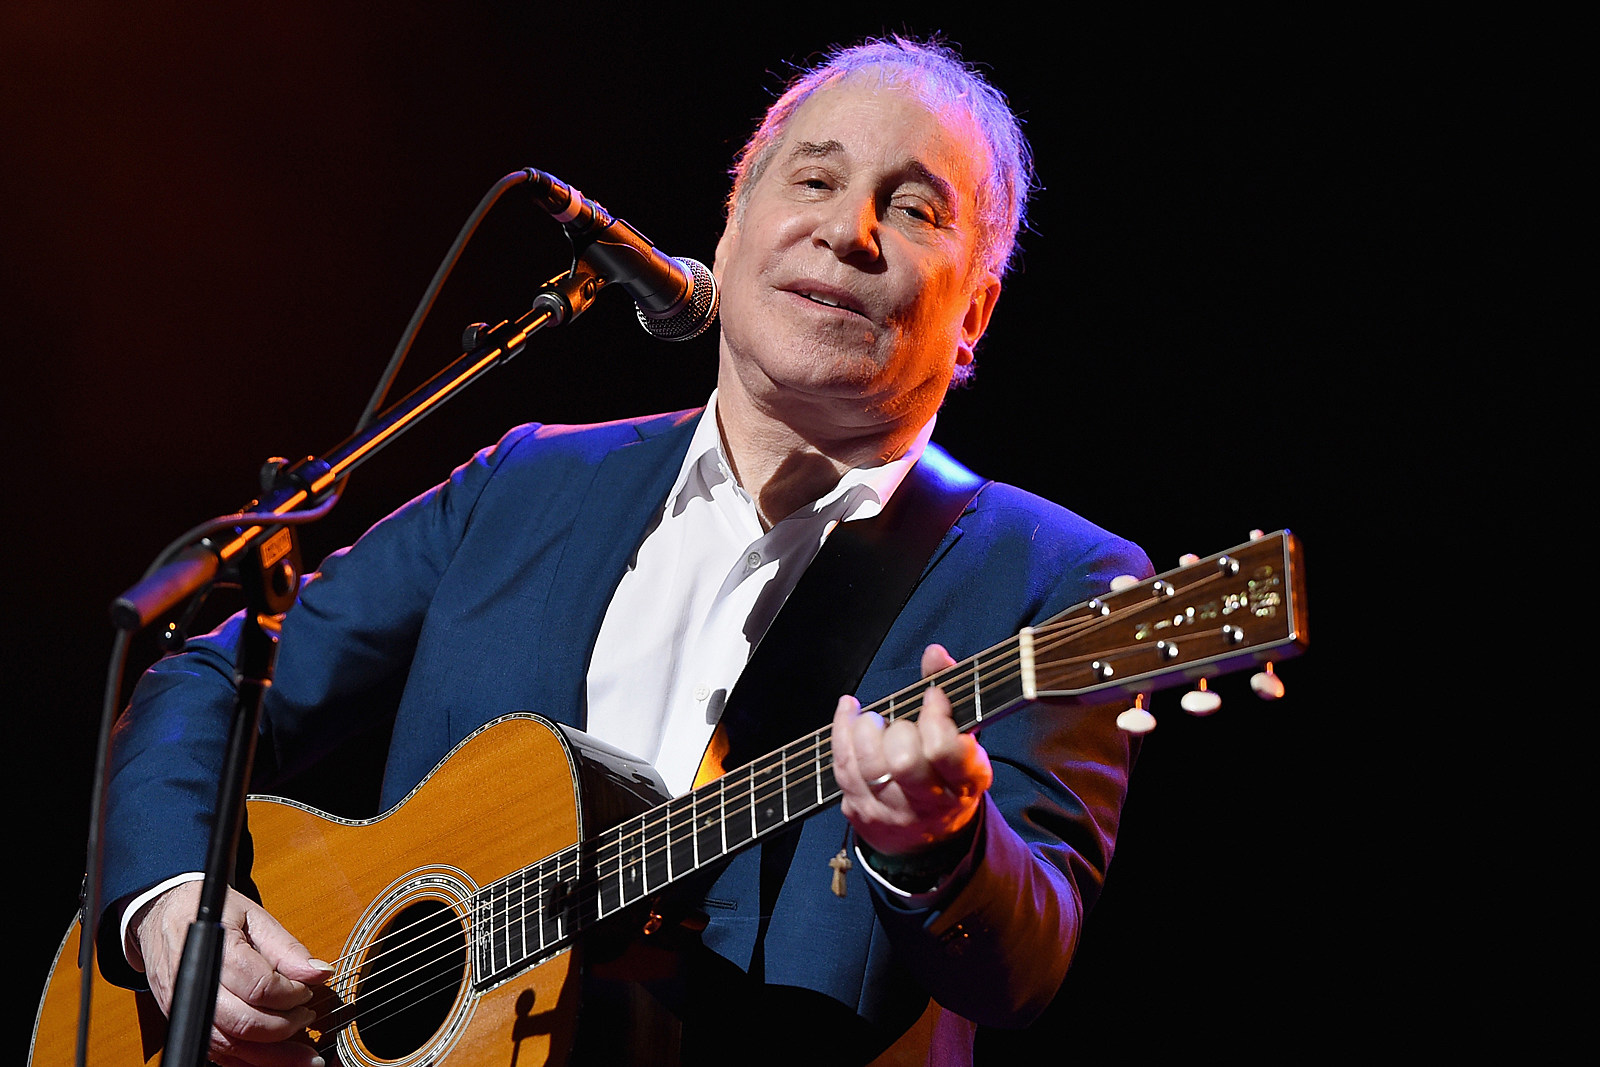 Paul Simon to Return to Performing at Outside Lands Festival